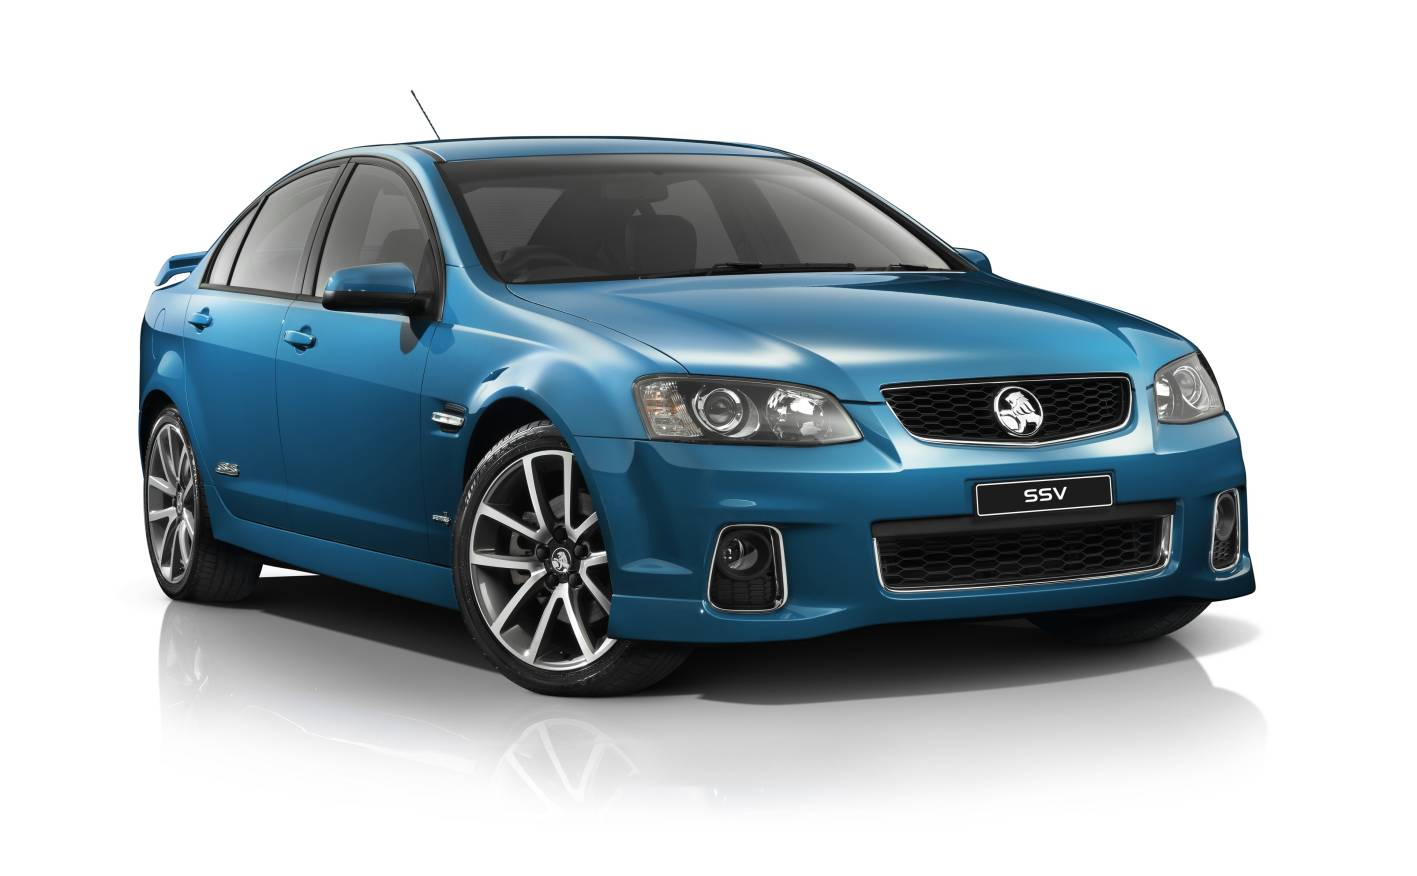 2012 Holden Commodore Ss V